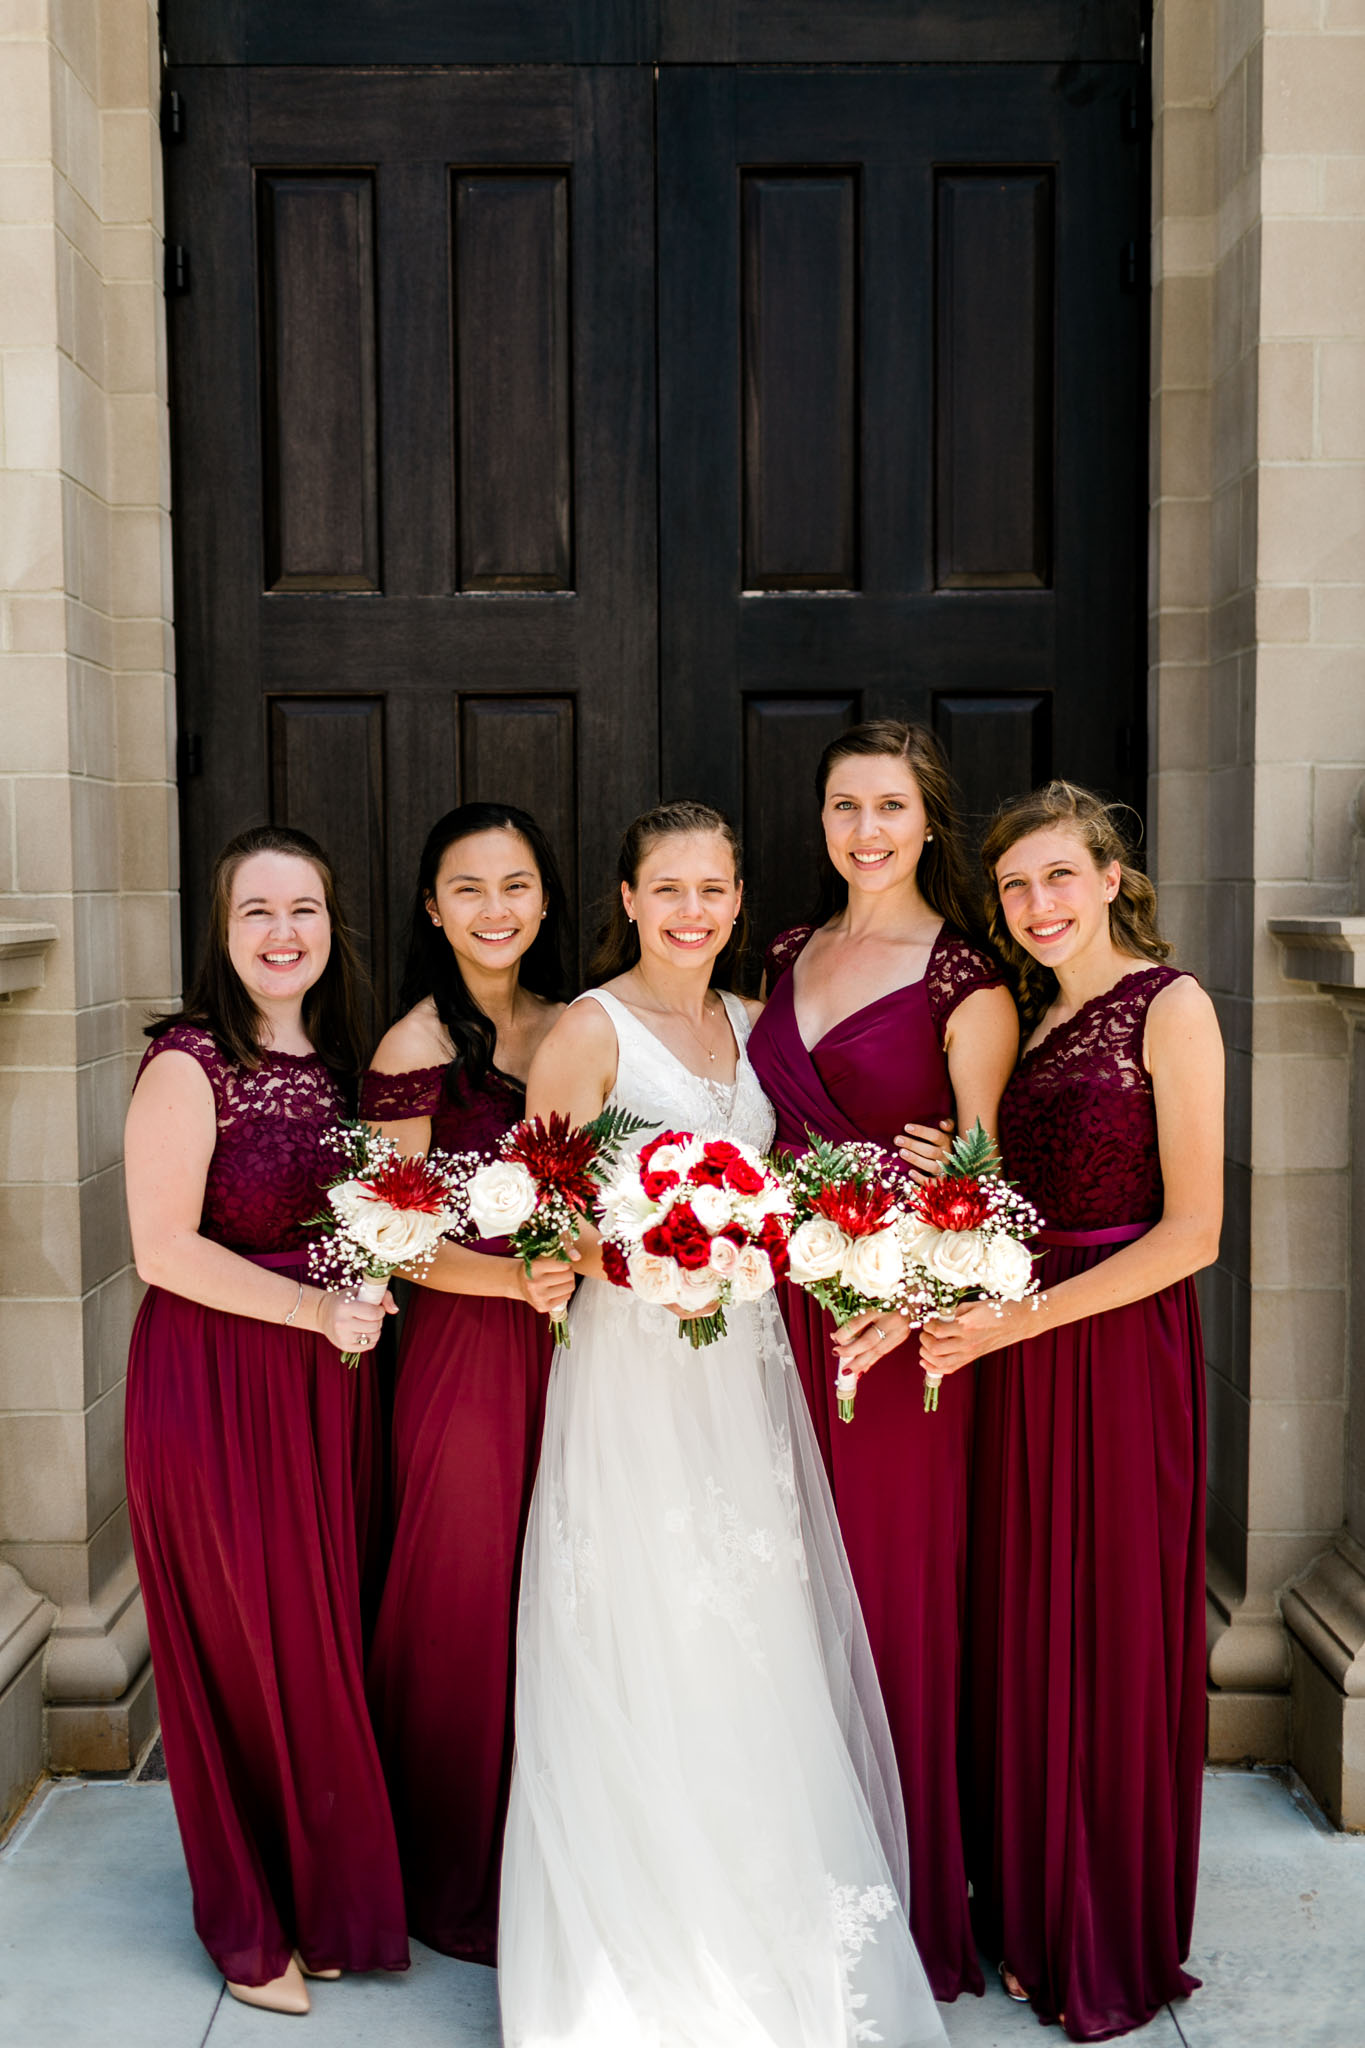 Bridesmaids wearing red wine gowns | Raleigh Wedding Photographer | By G. Lin Photography